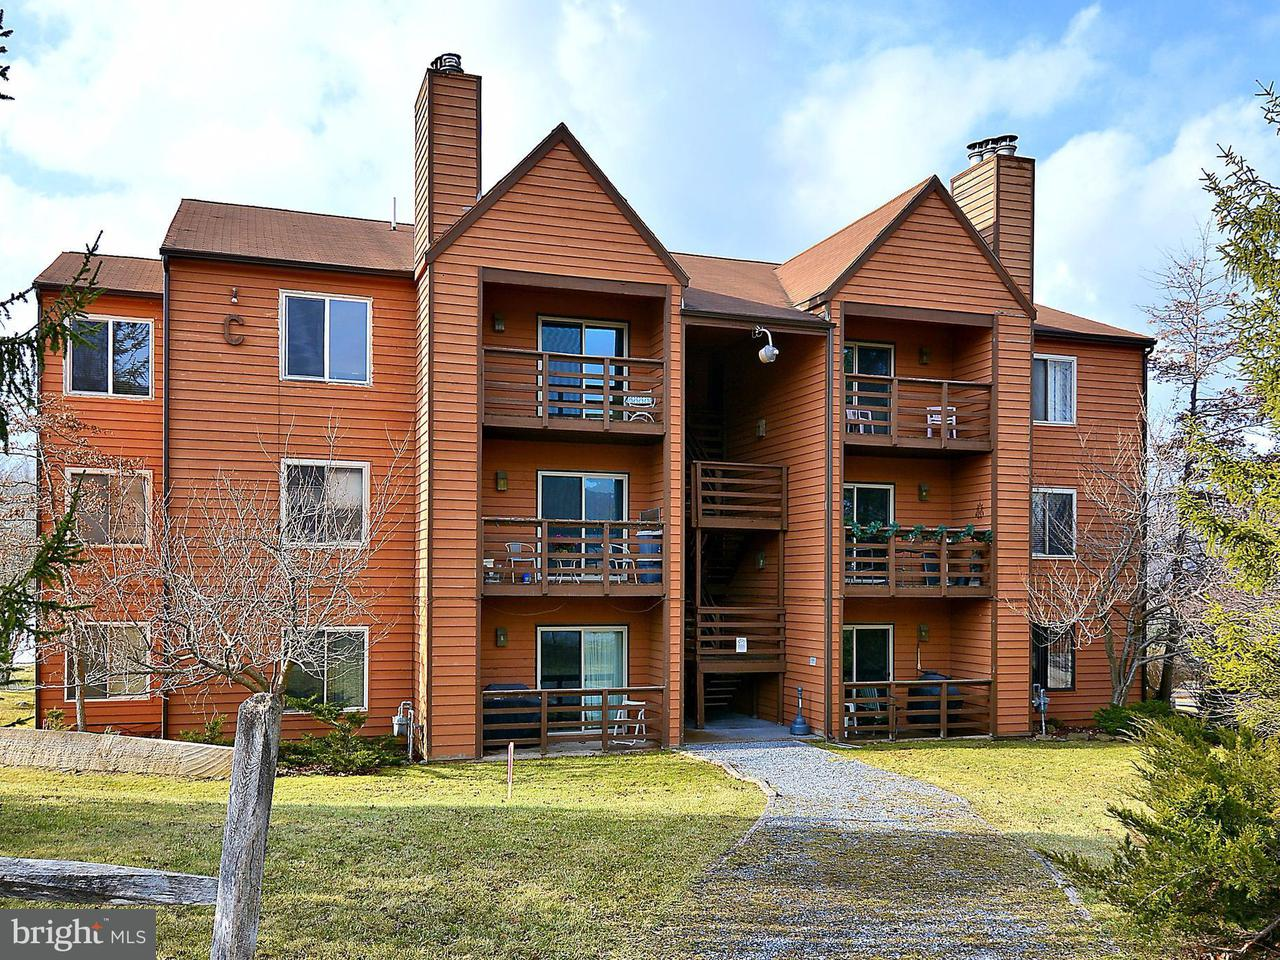 Condominium for Sale at 29 Herzwood Dr #c301 Davis, West Virginia 26260 United States